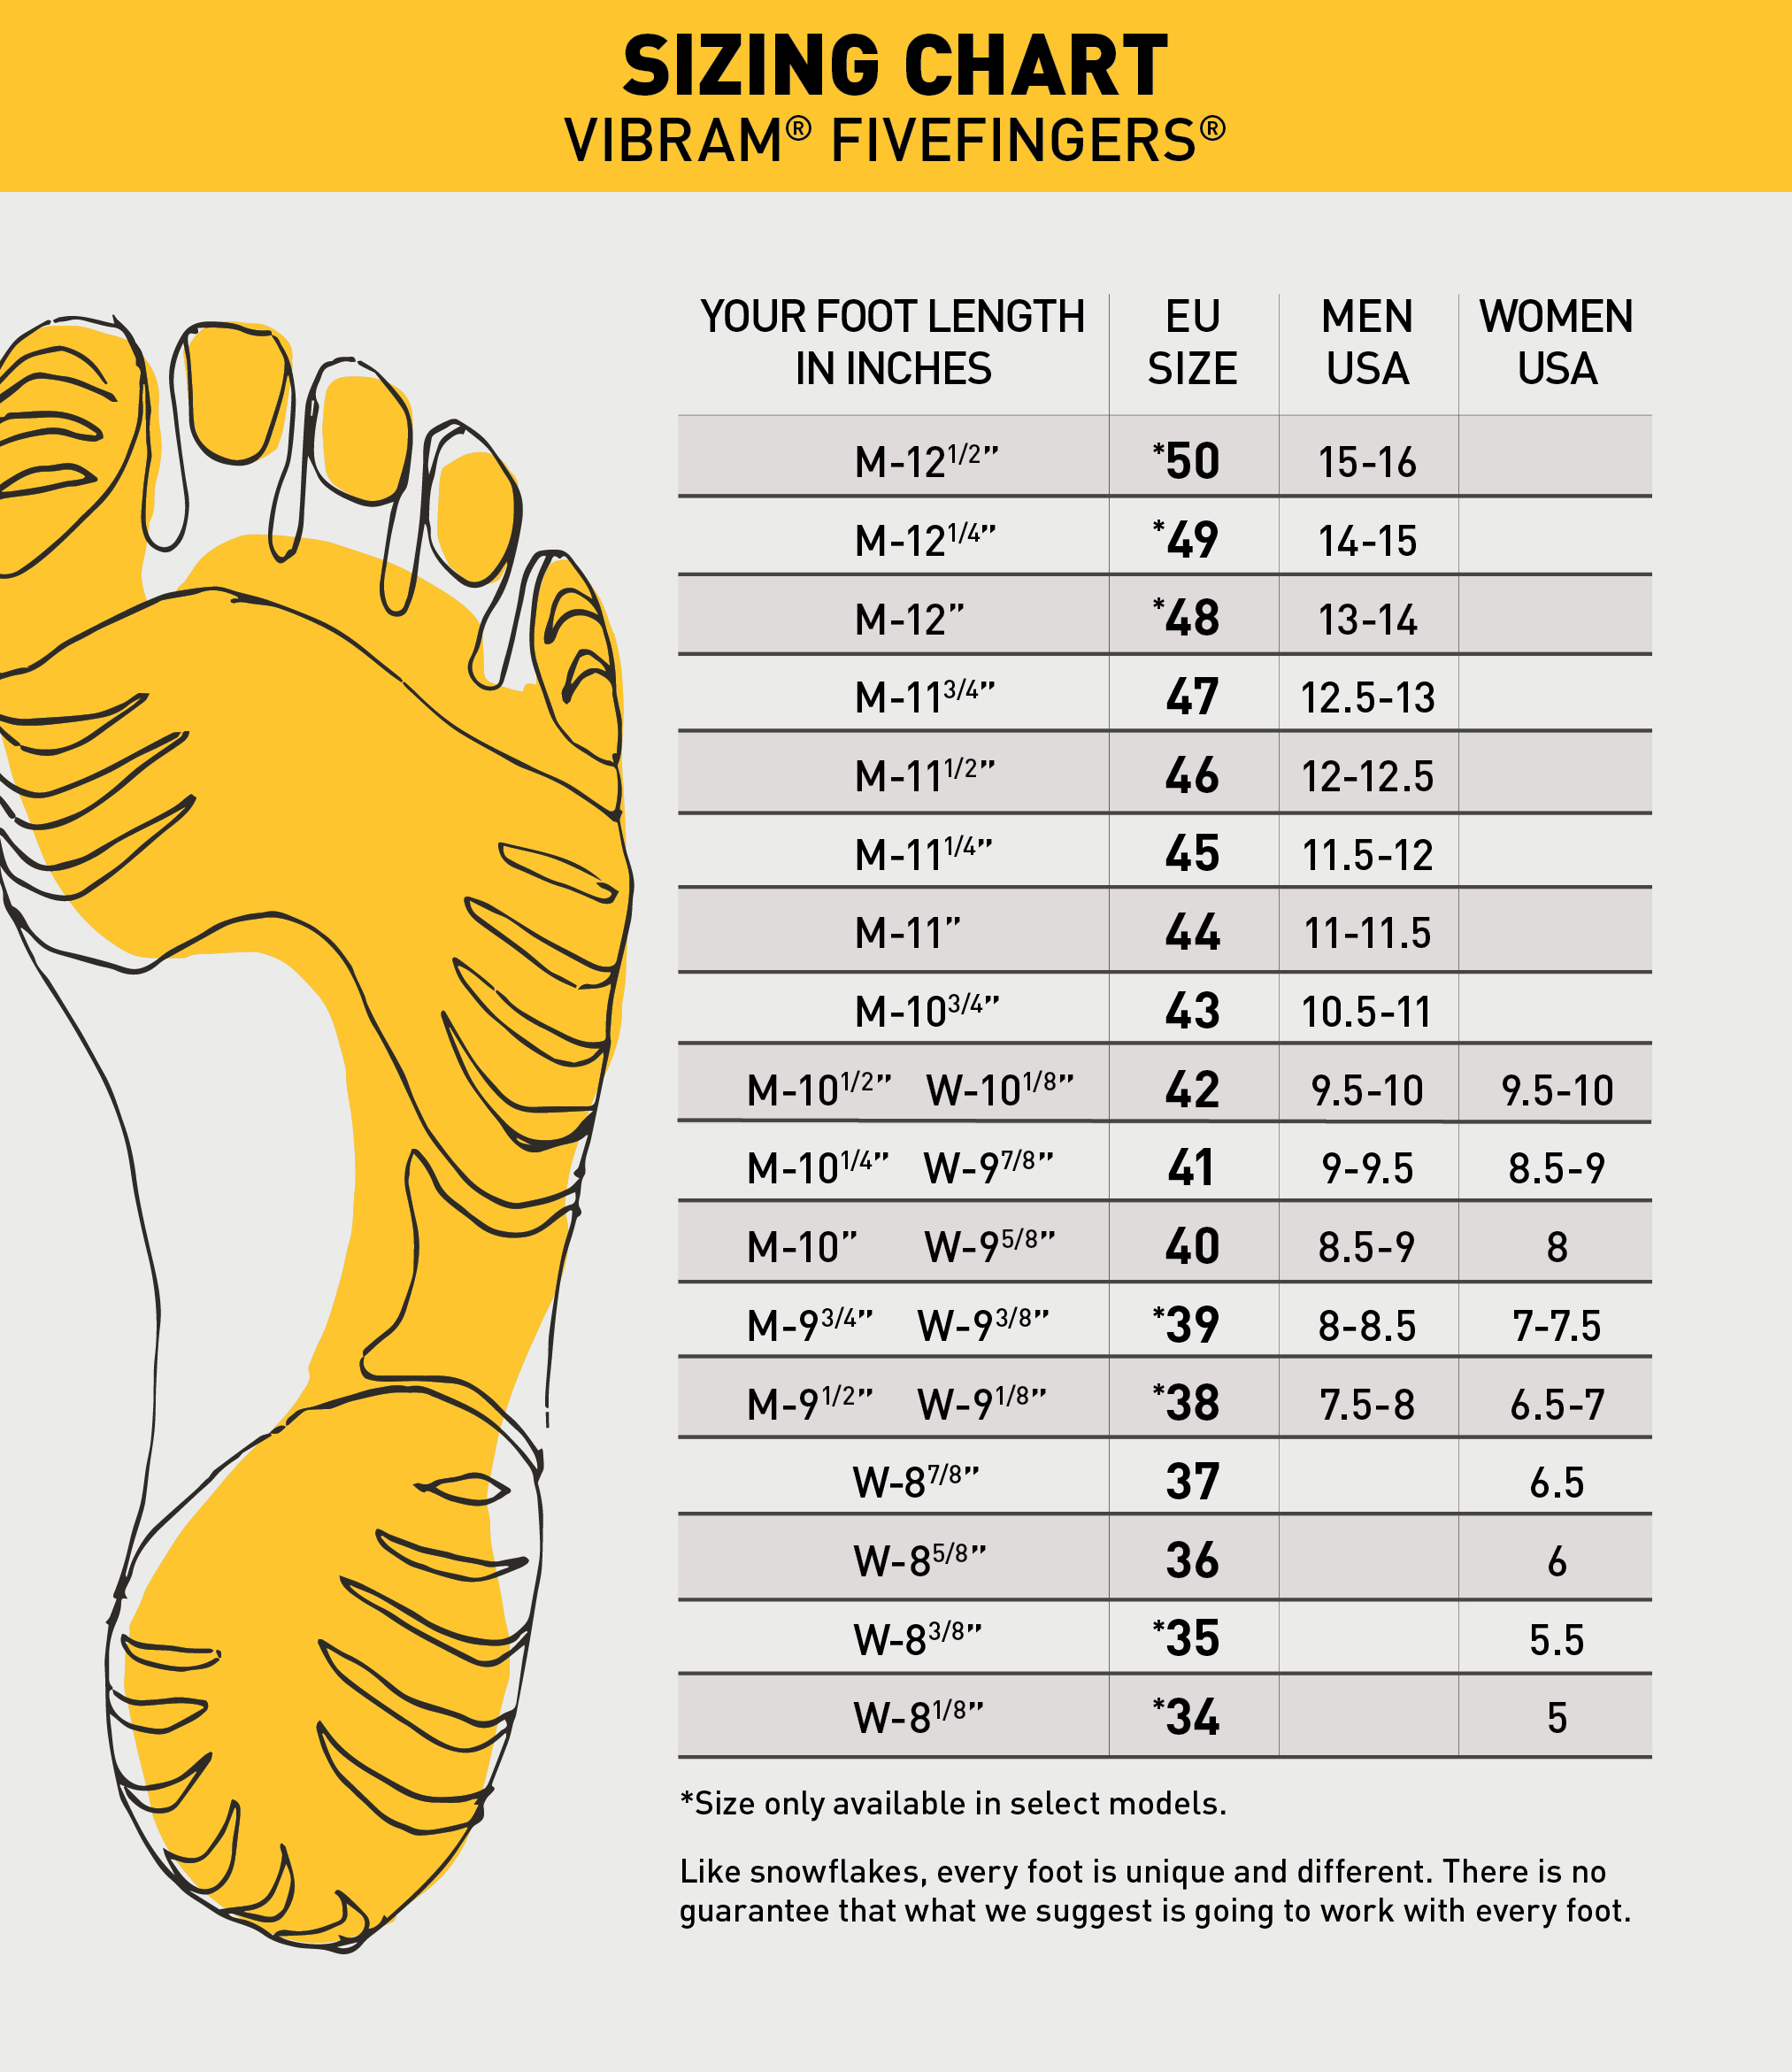 vibram five fingers classic sizing